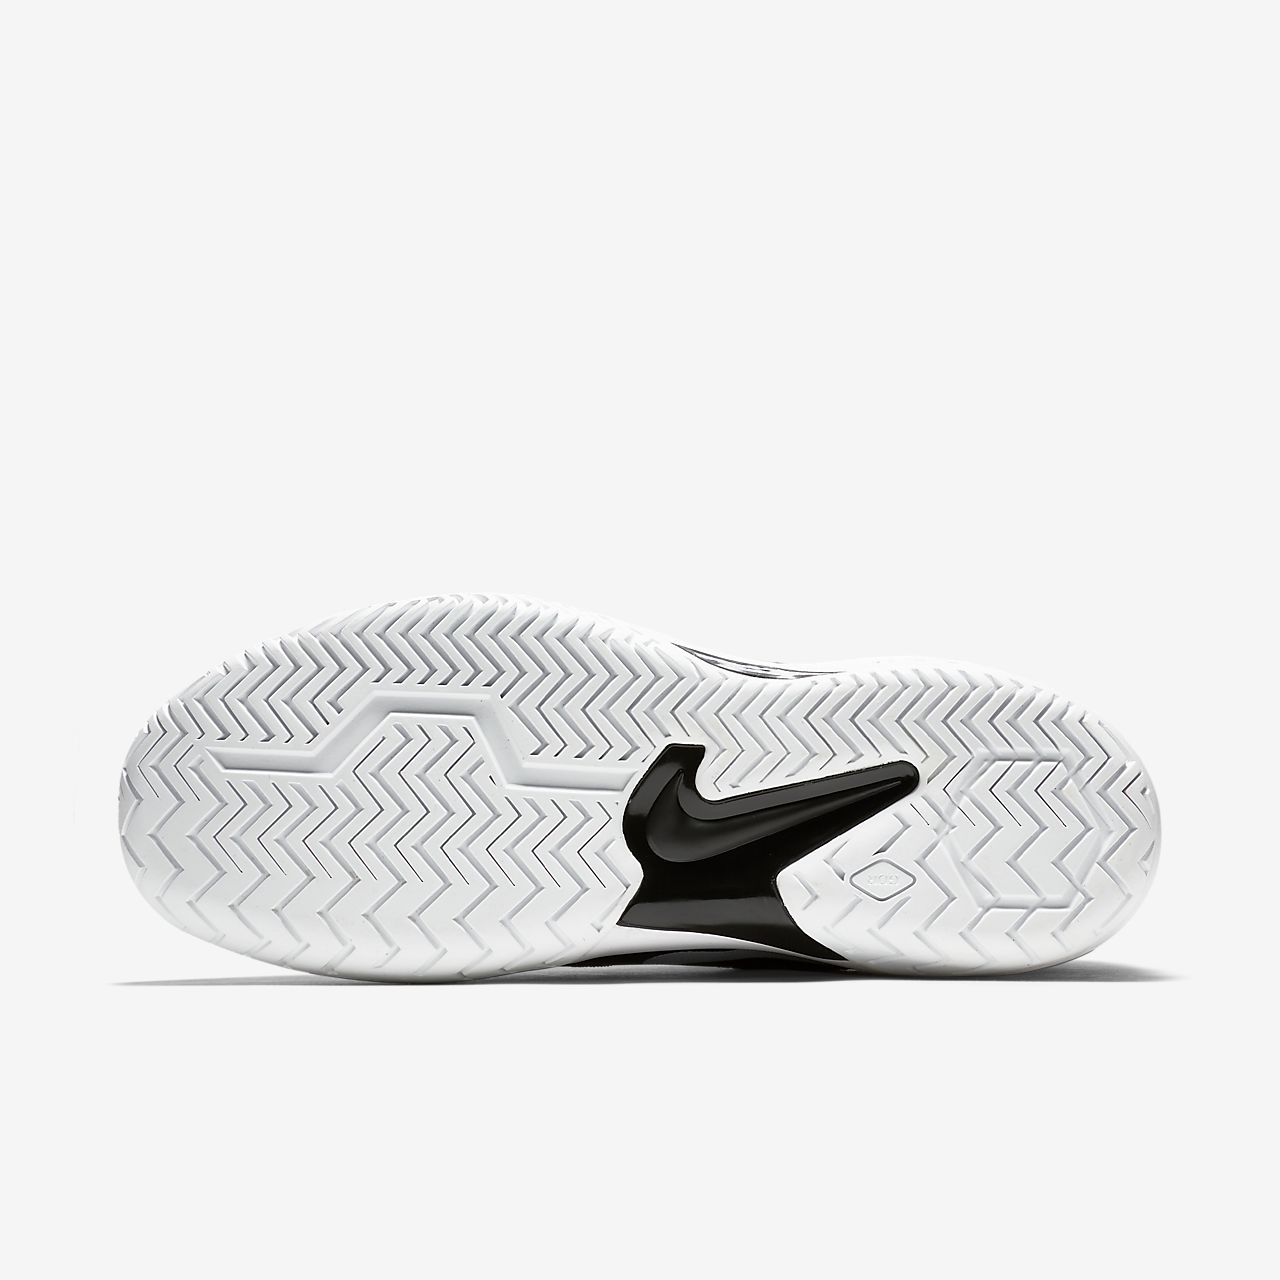 info for 8c7f5 48d0a ... NikeCourt Air Zoom Resistance Men s Hard Court Tennis Shoe